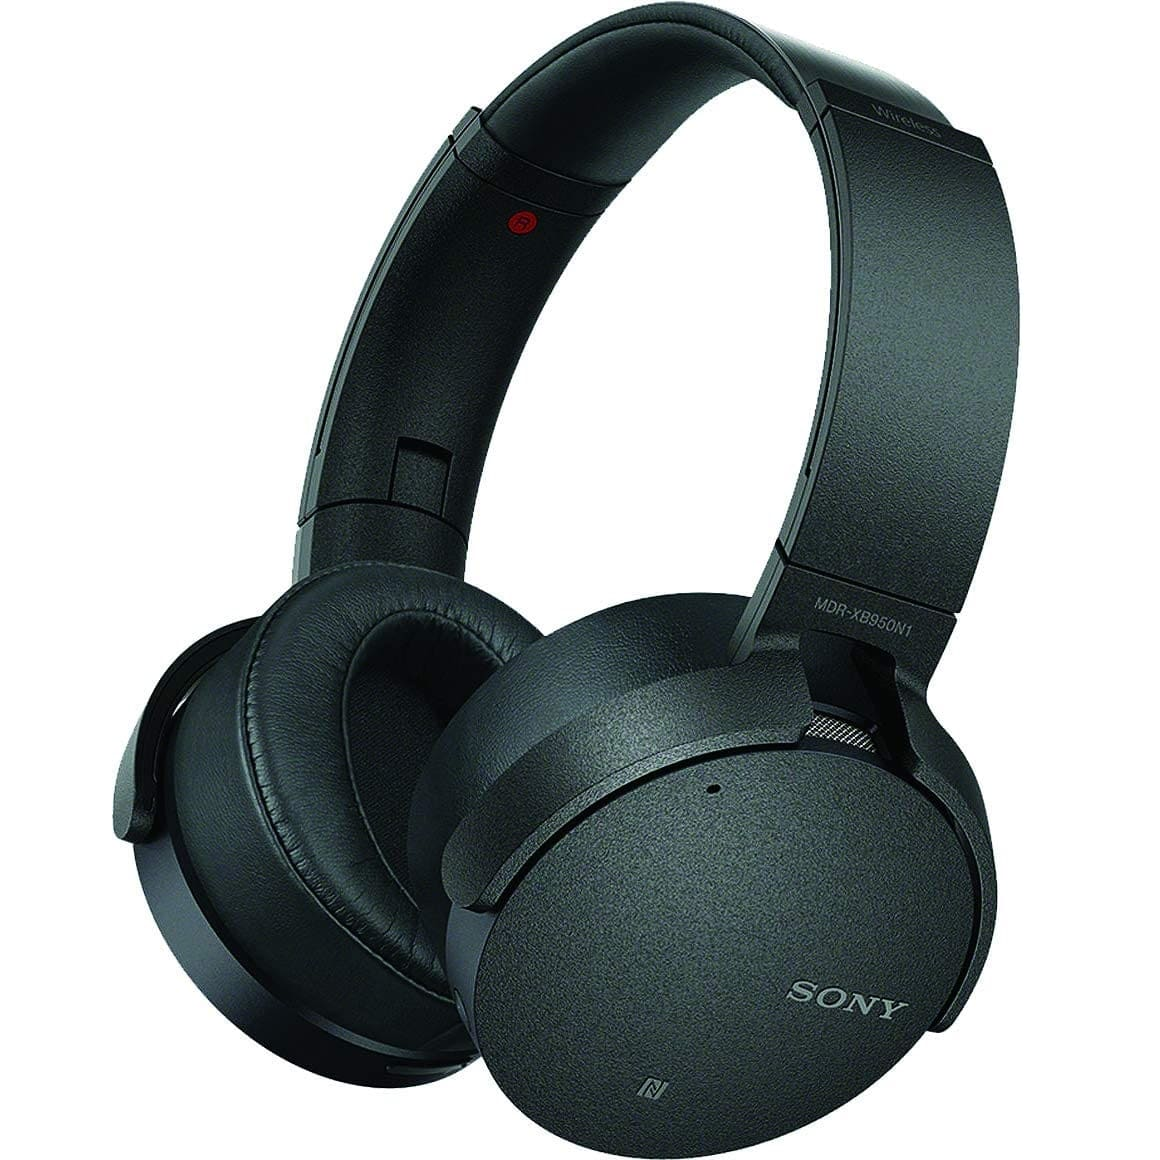 Sony MDR-XB950N1 Wireless Headphones: A Complete Review